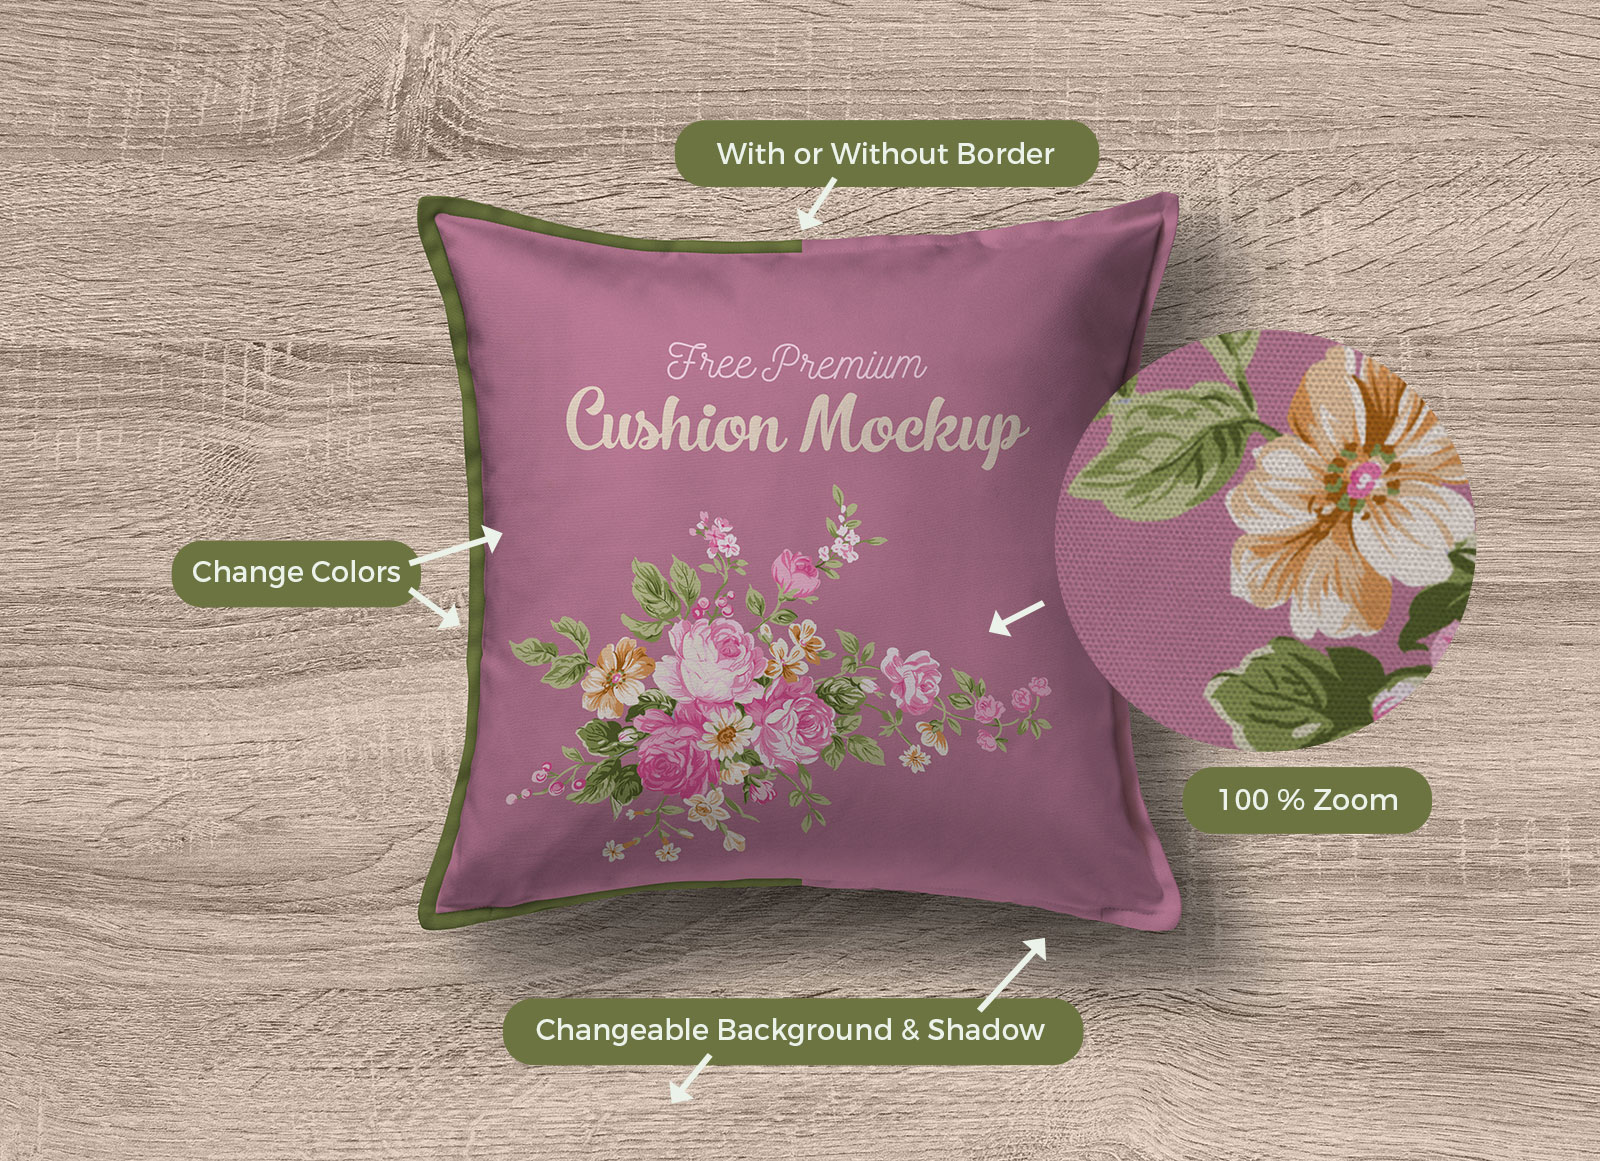 Free-Premium-Pillow-Cushion-Mockup-PSD-File